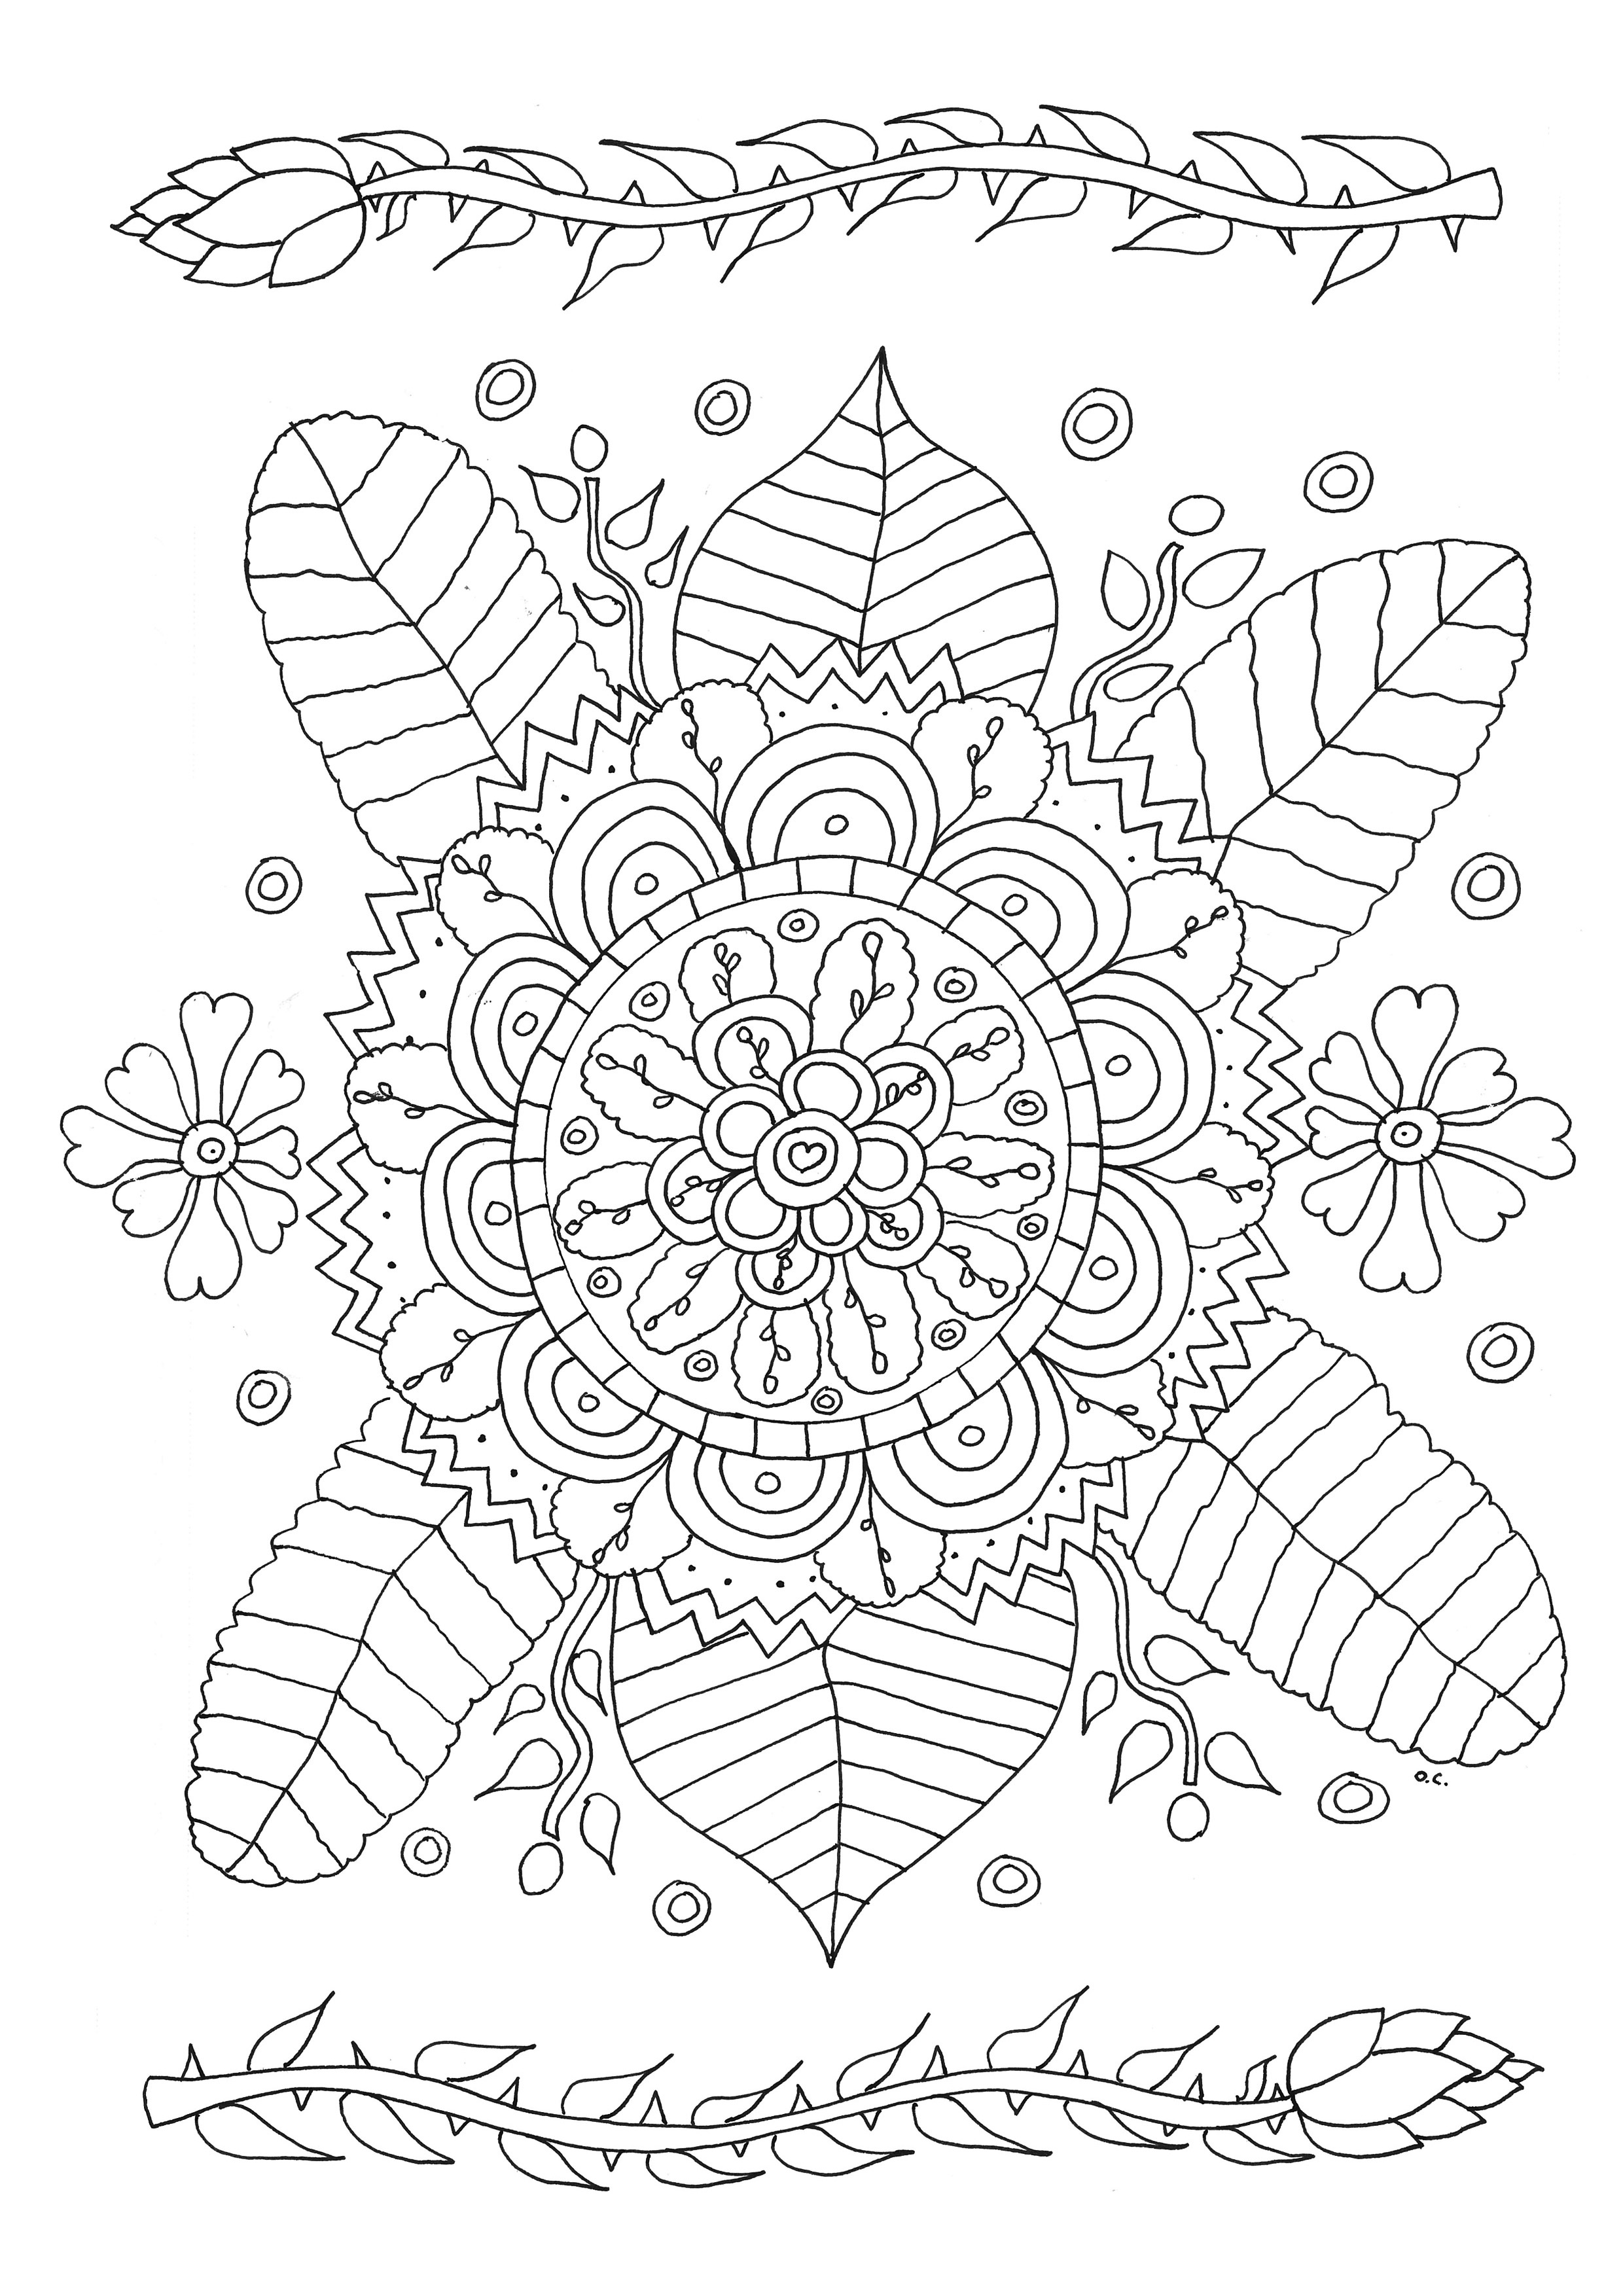 Flowers coloring page to print and color